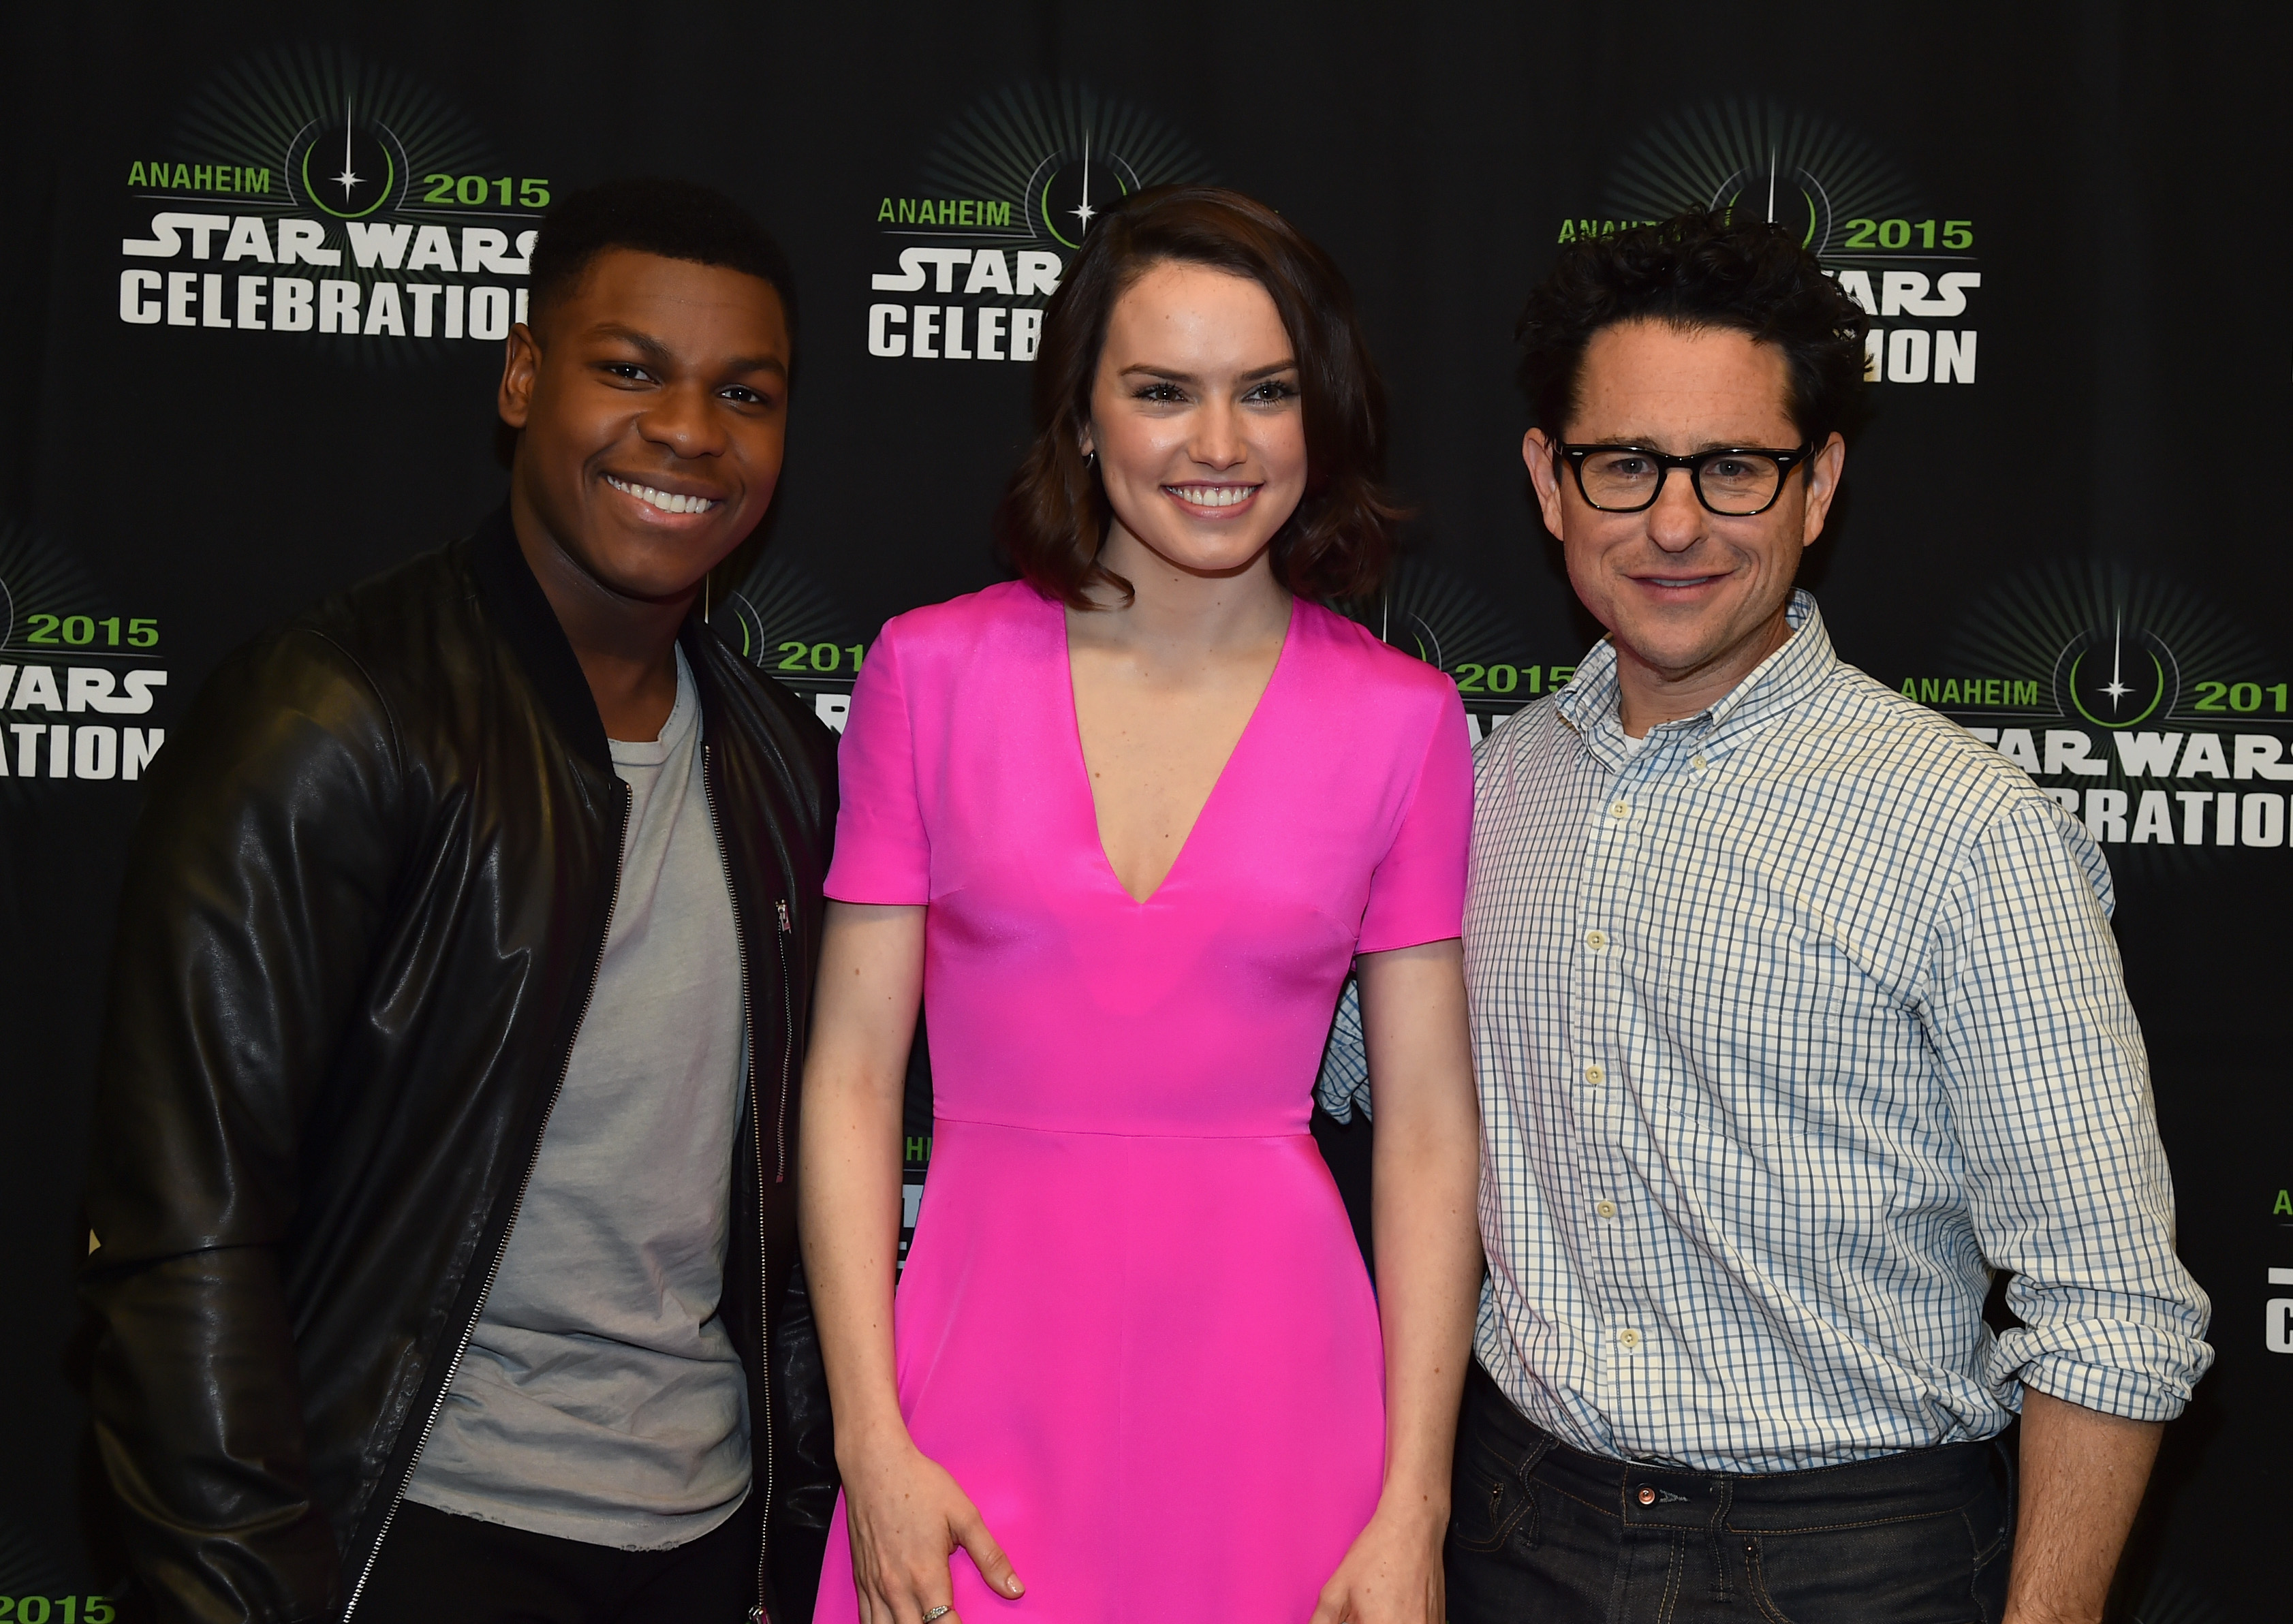 John Boyega Daisy Ridley Celebrate Force Friday Theyre Making The Wet Brush Prints Perfect Star Wars Additions Already Photos